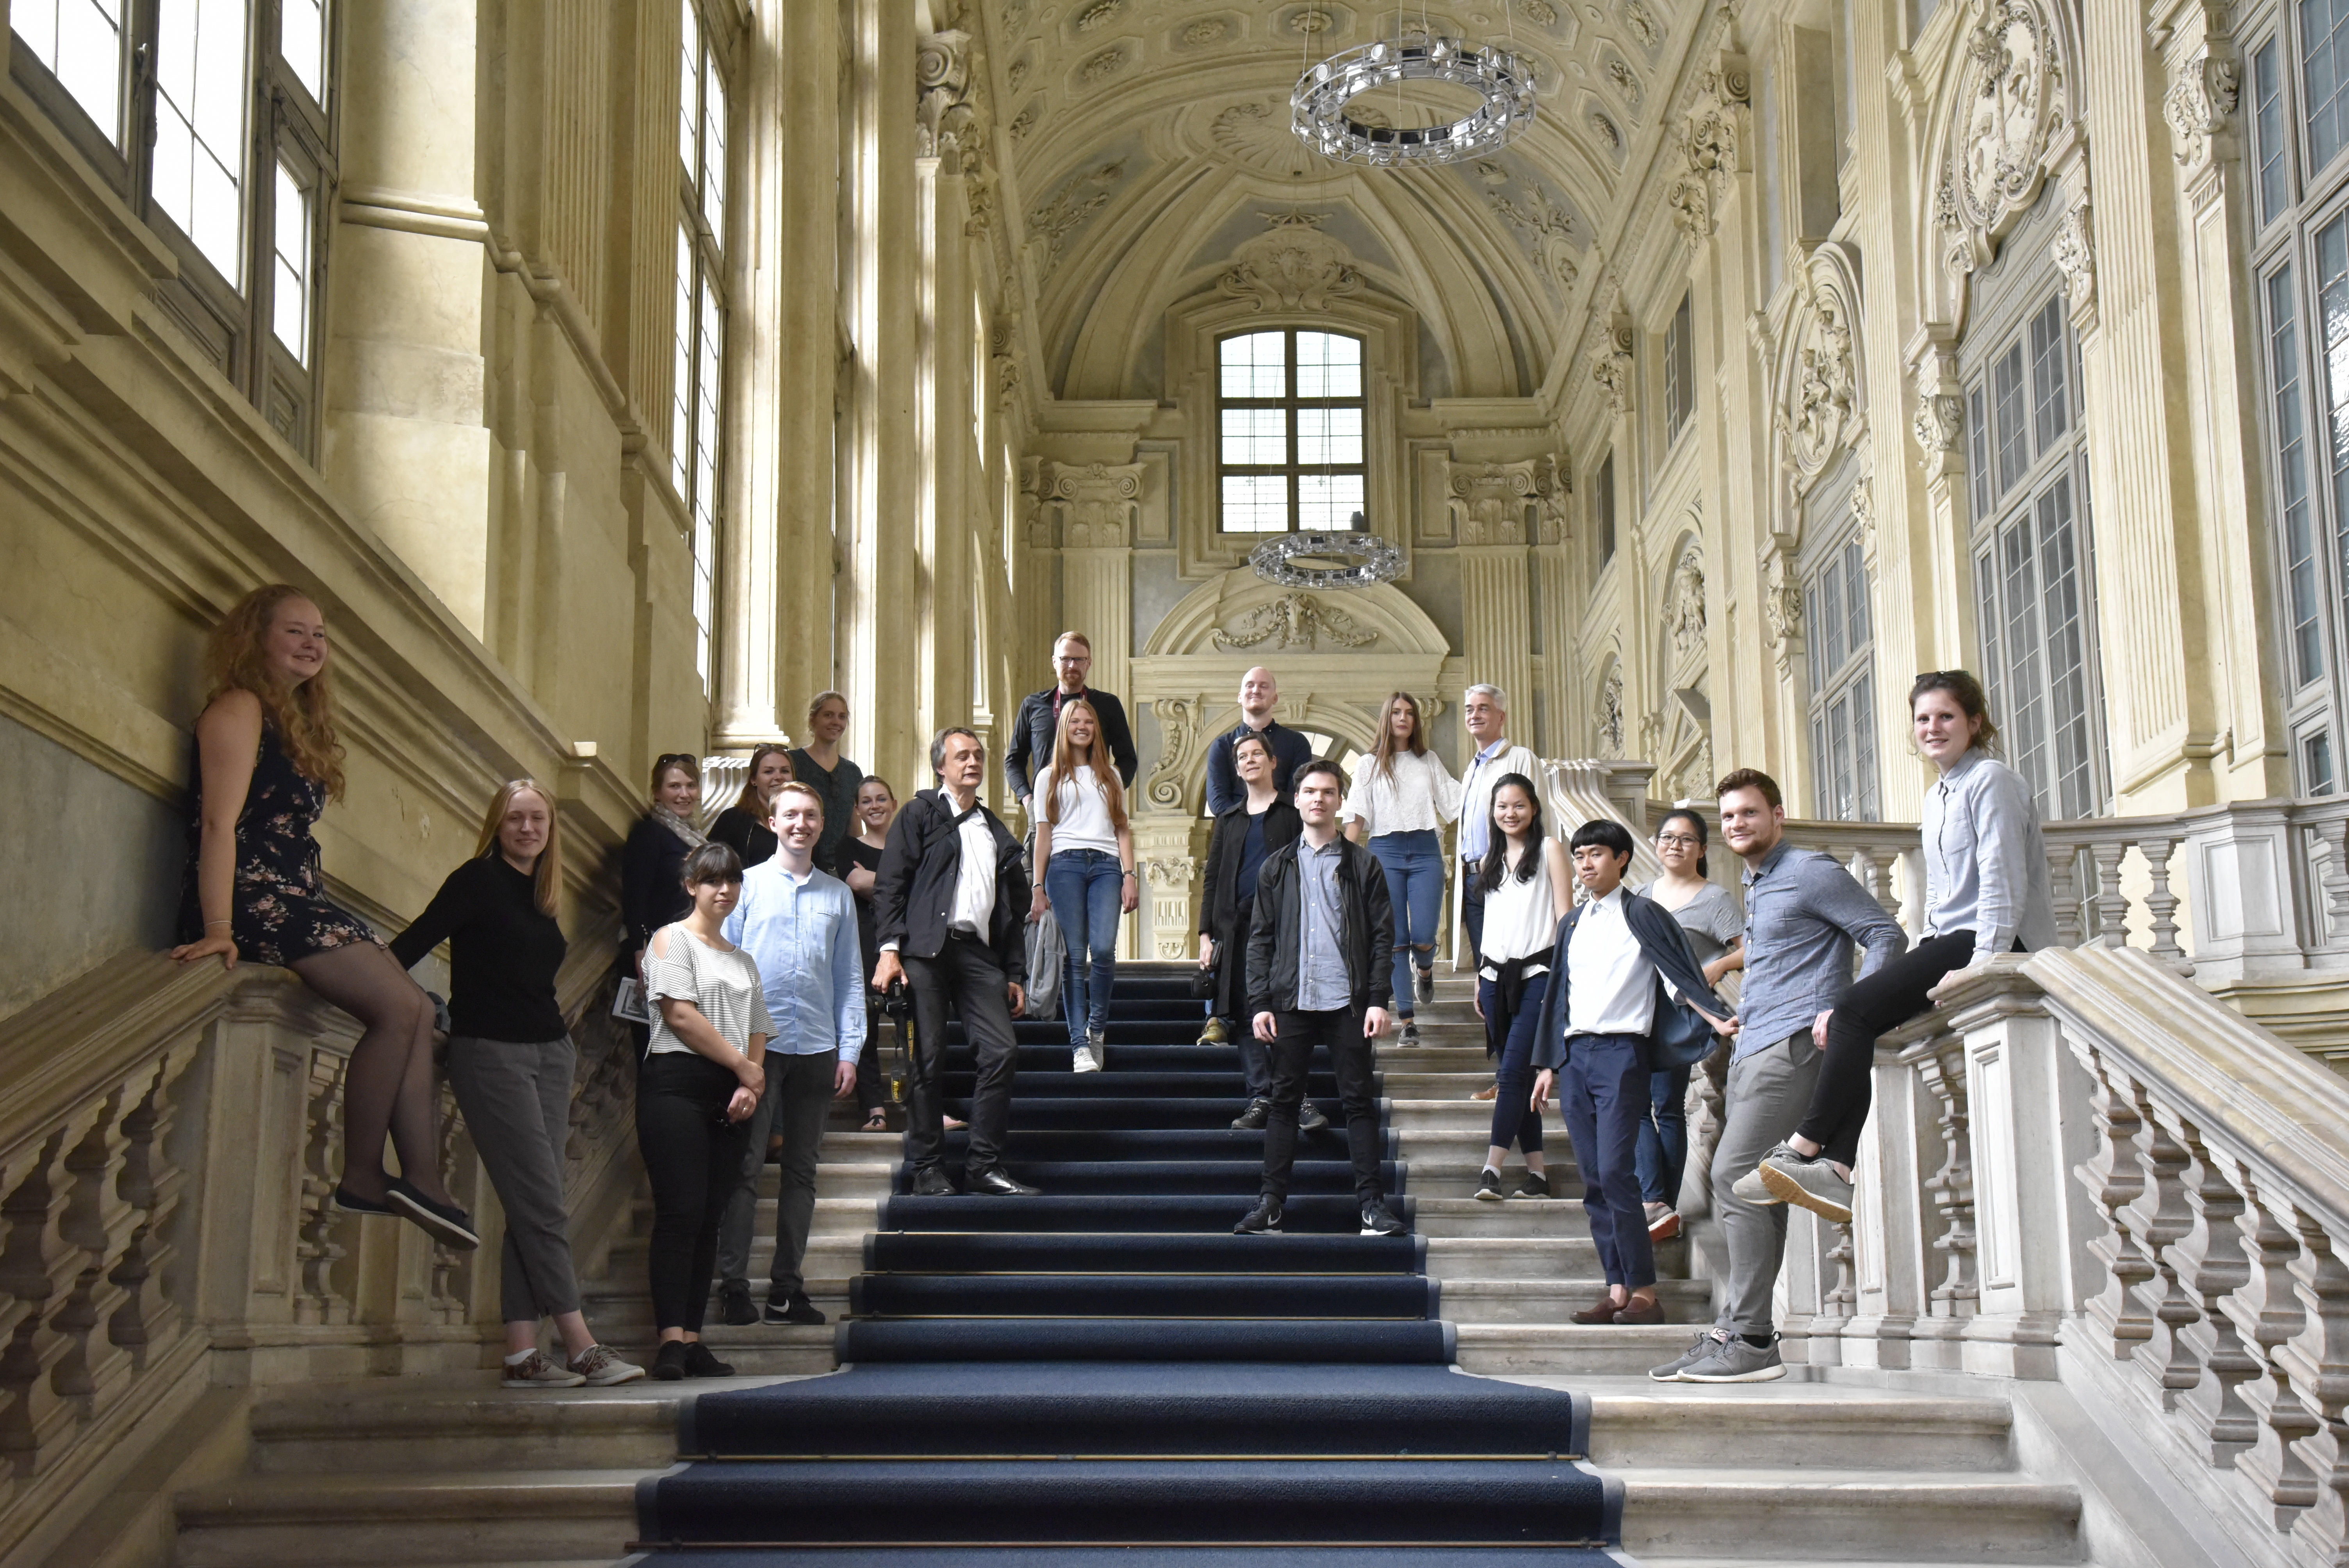 Group photo in the staircase of Palazzo Madama in Turin